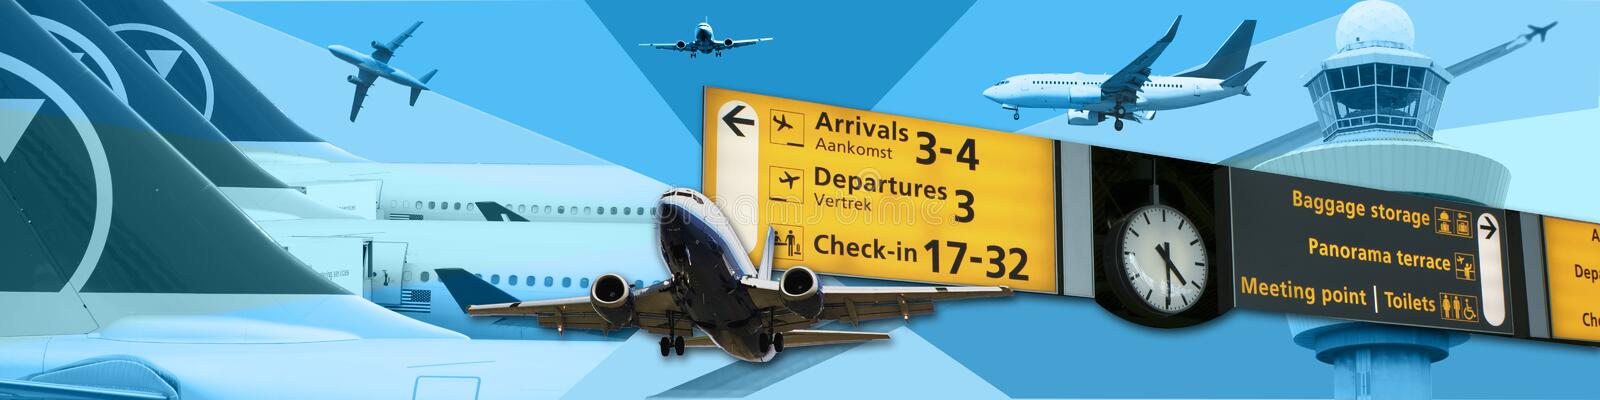 Travel banner. Travel design/ background with planes going in all directions and a sign with travel information royalty free illustration